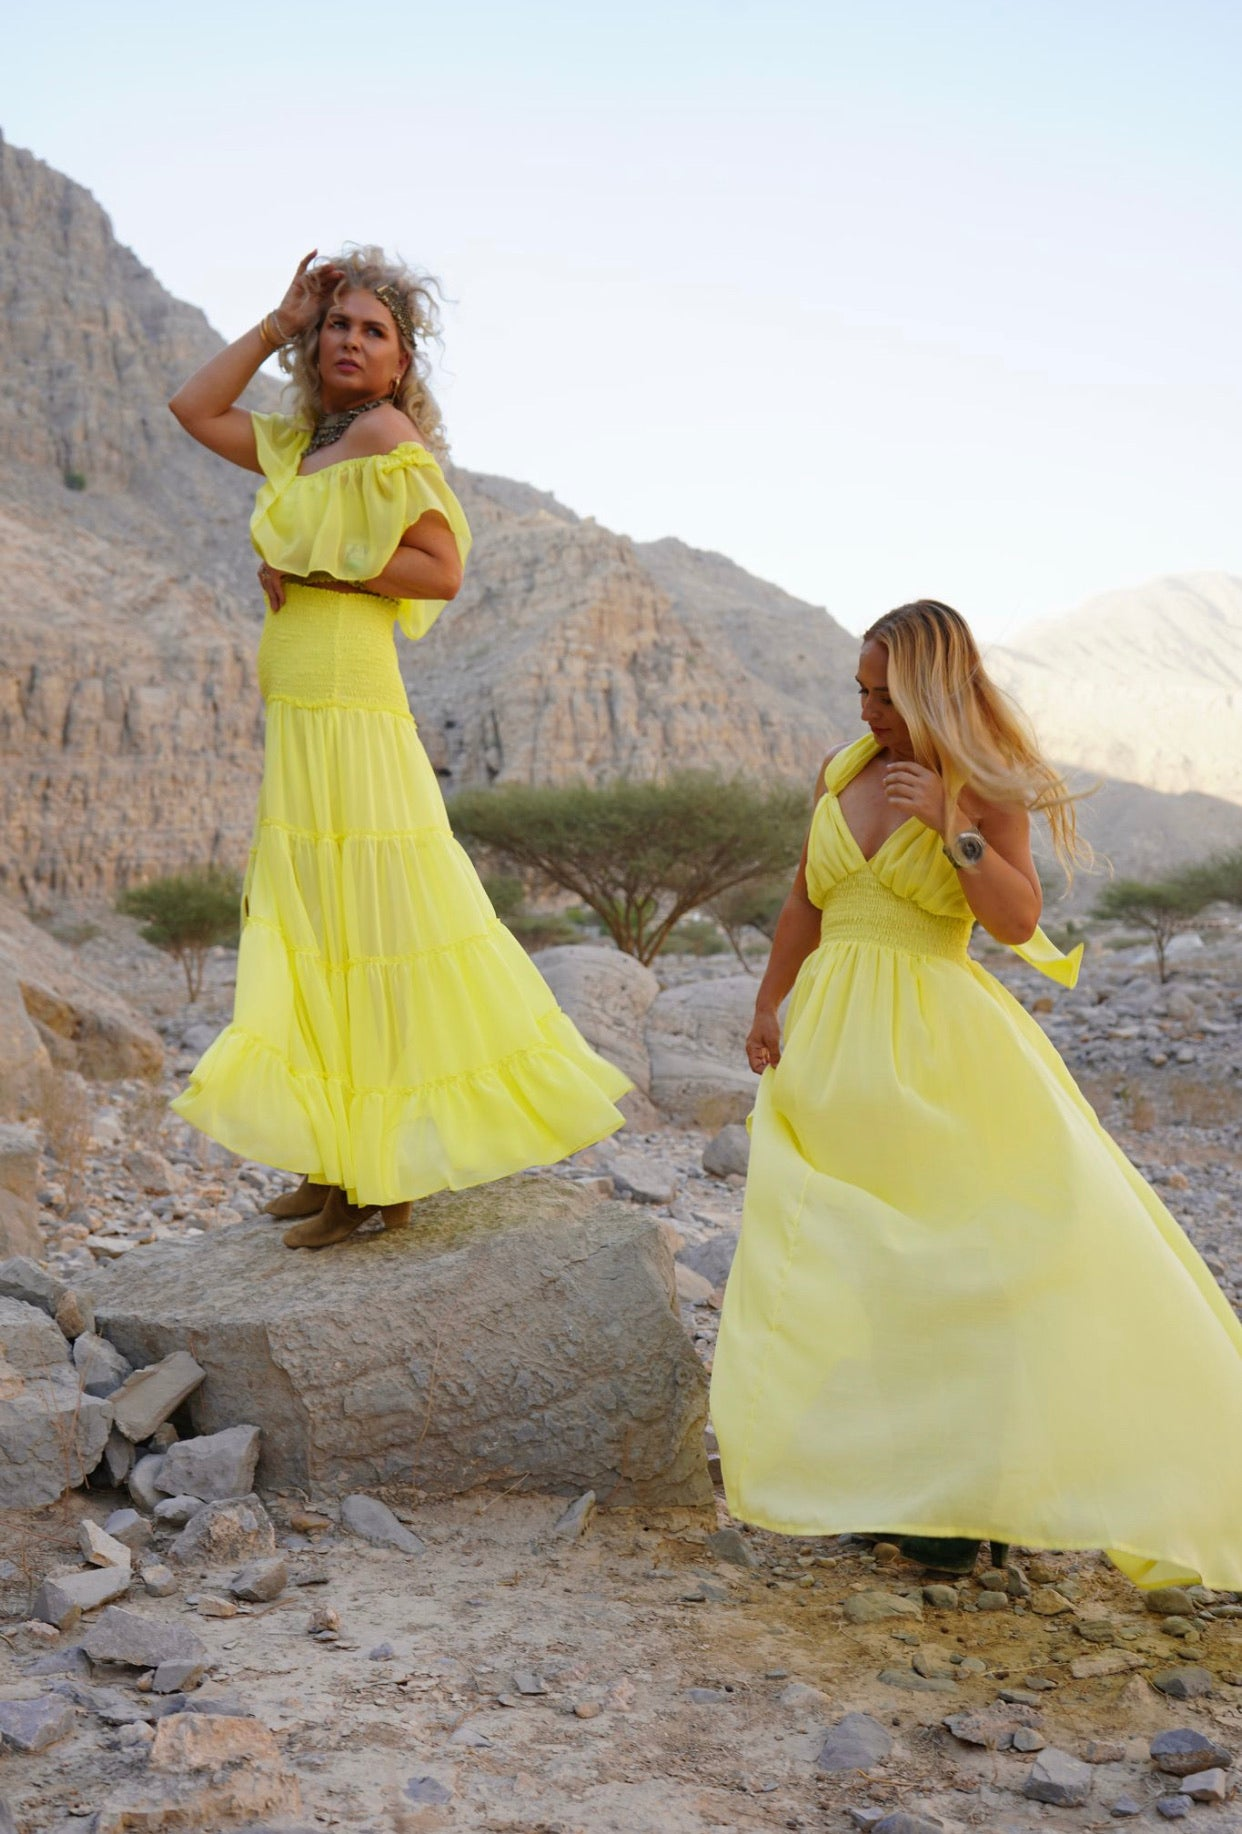 Yellow Helen halter dress